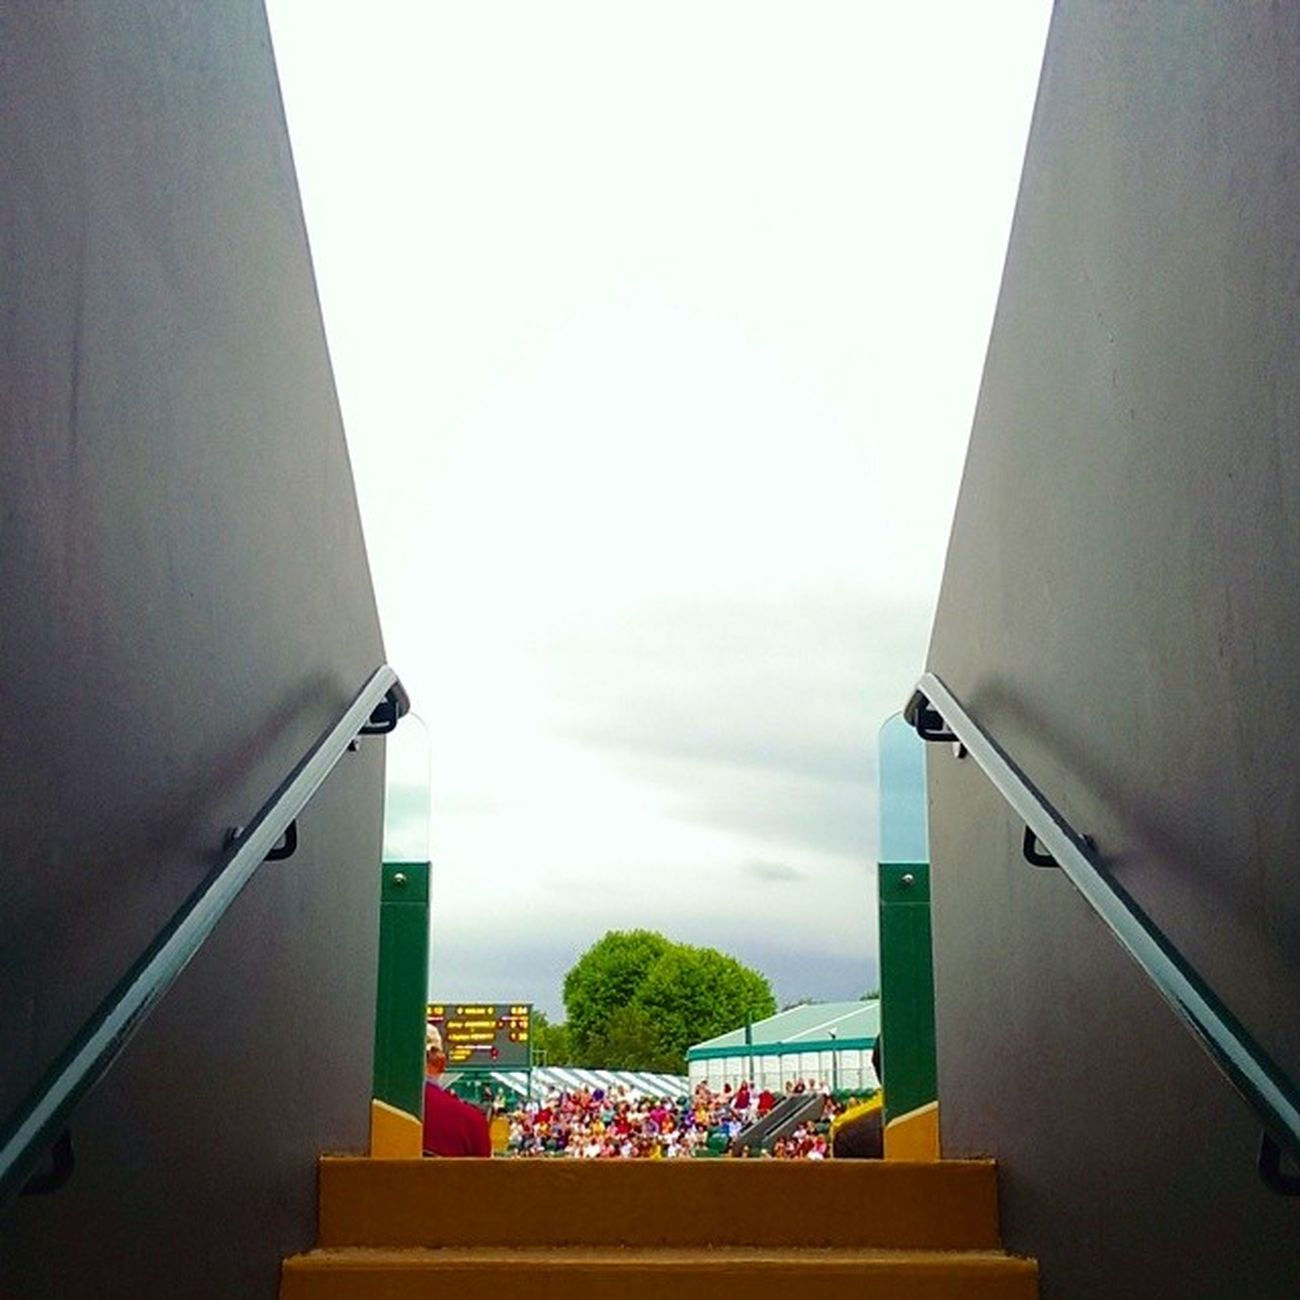 Stepping onto court. Wimbledon London Lom_nlue Tennis